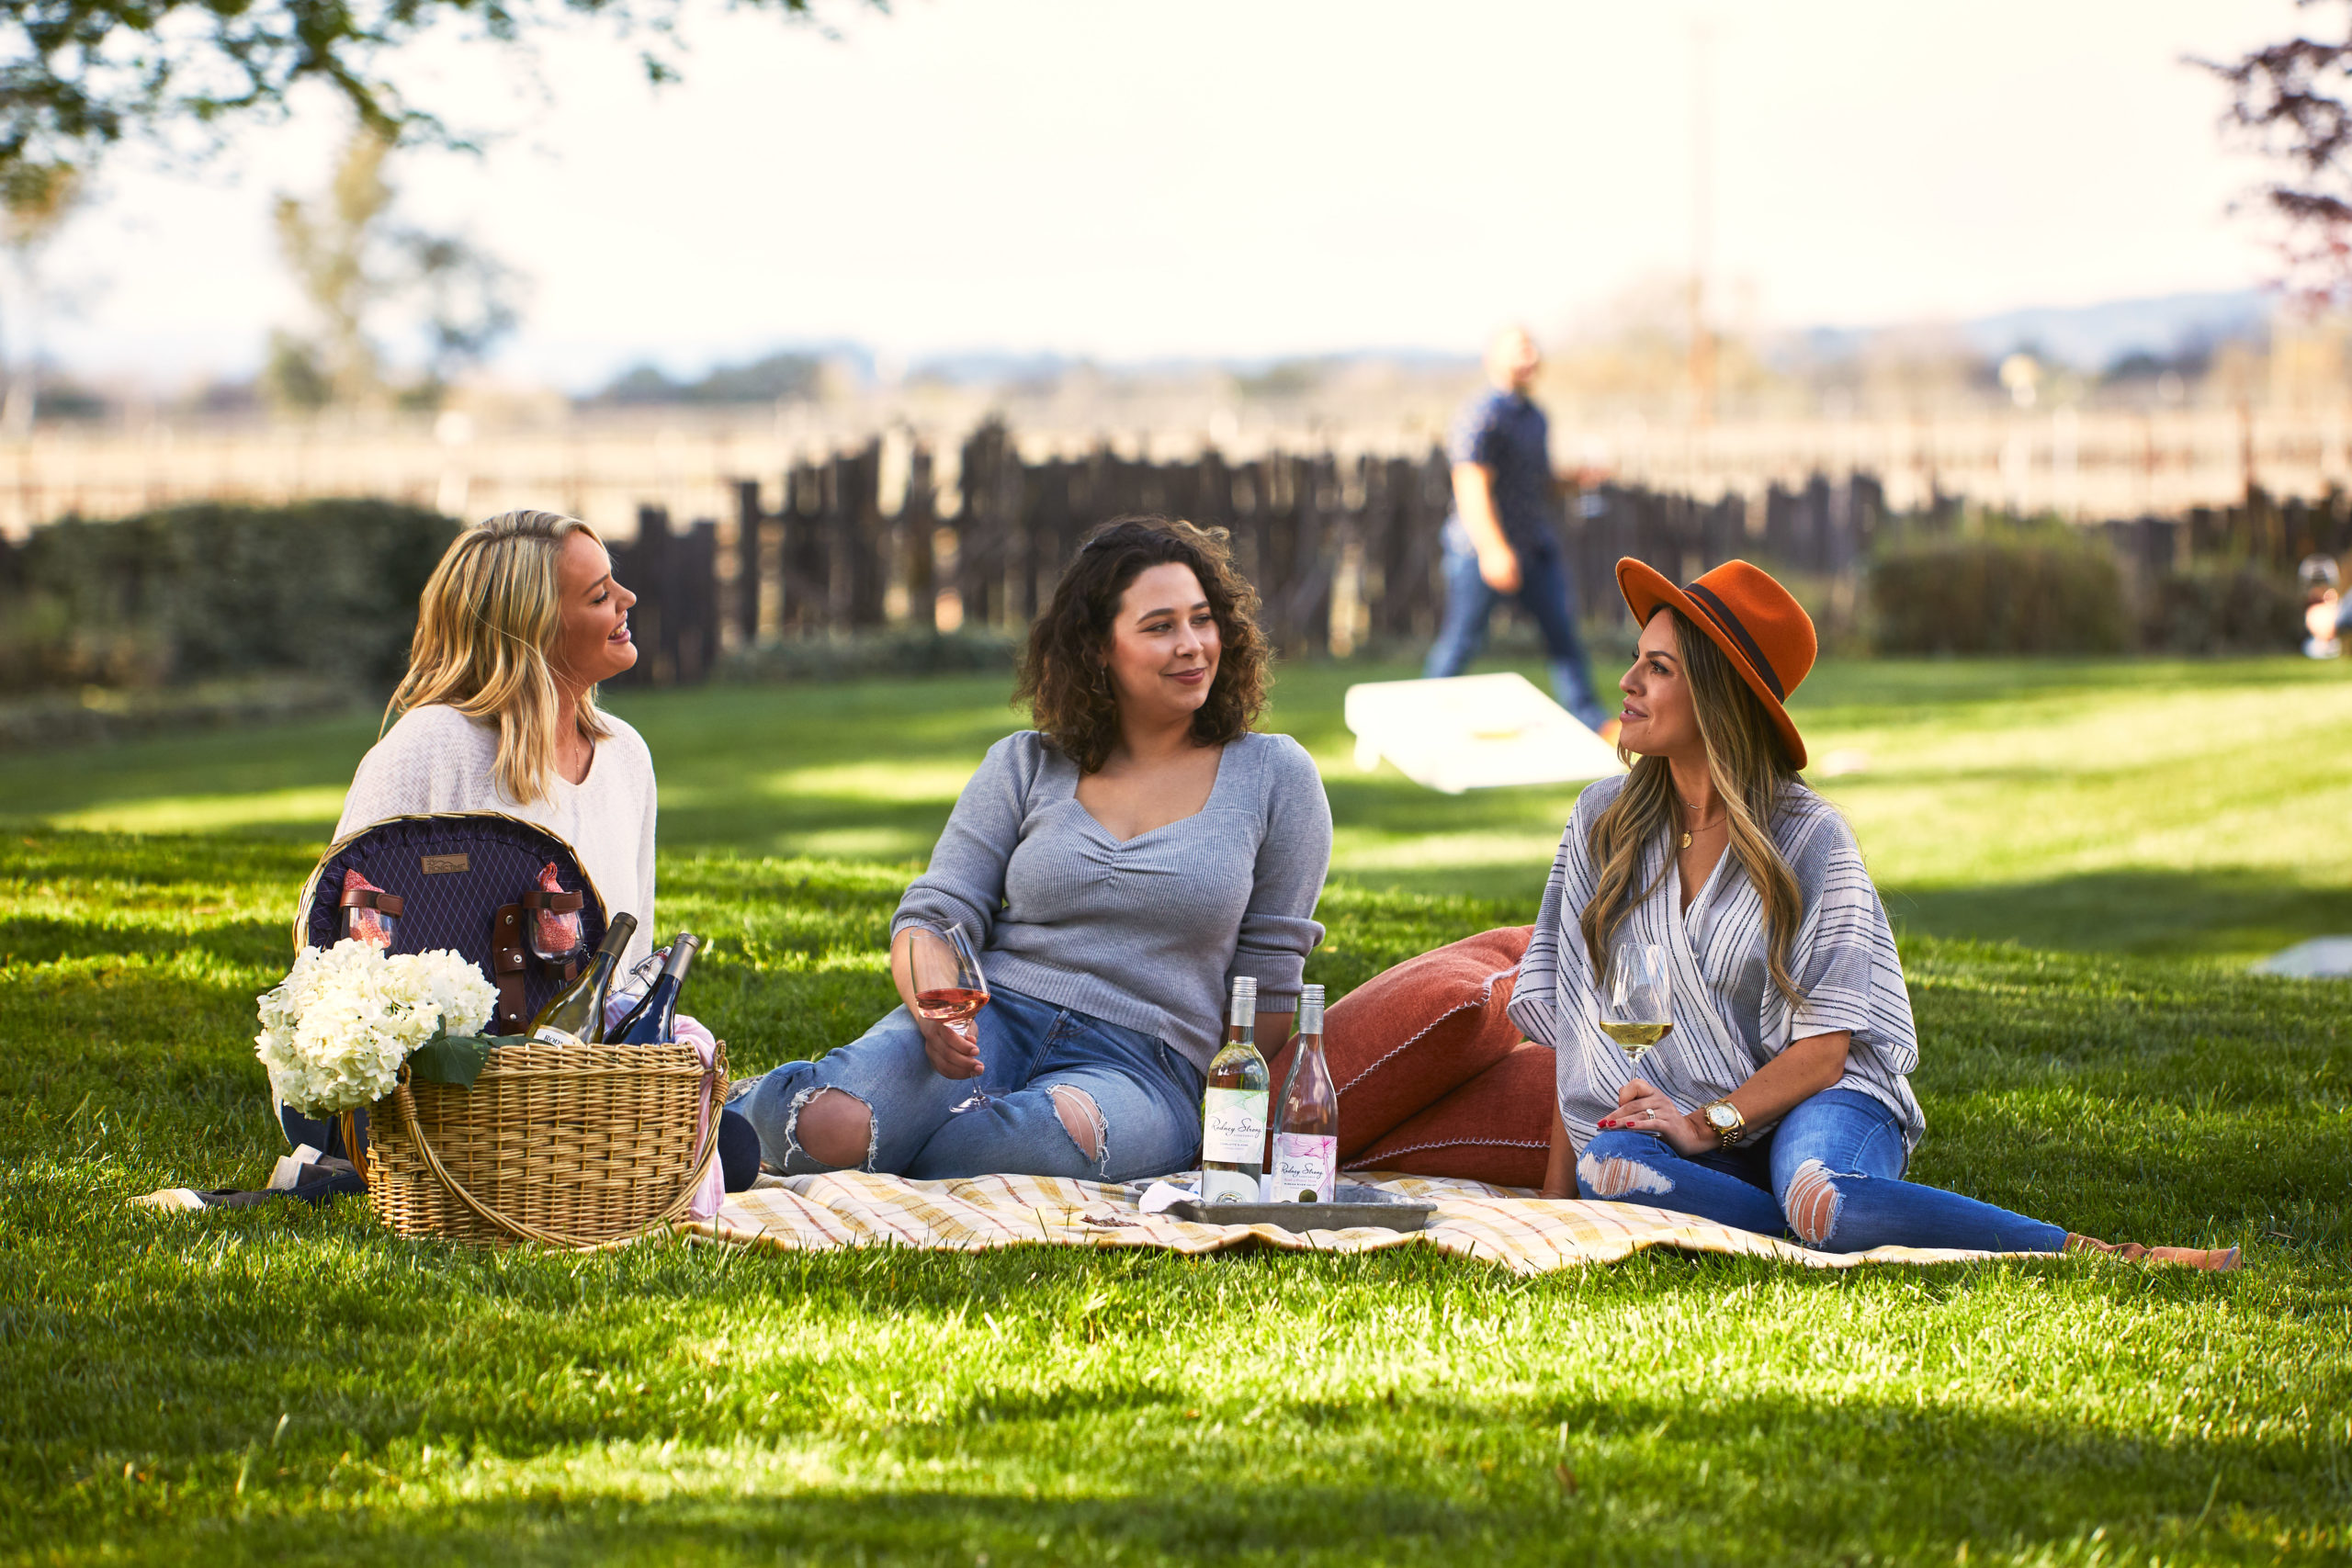 Three women relax with wine and a picnic basket on a blanket in the middle of a lush green lawn with a fence and trees in the distance